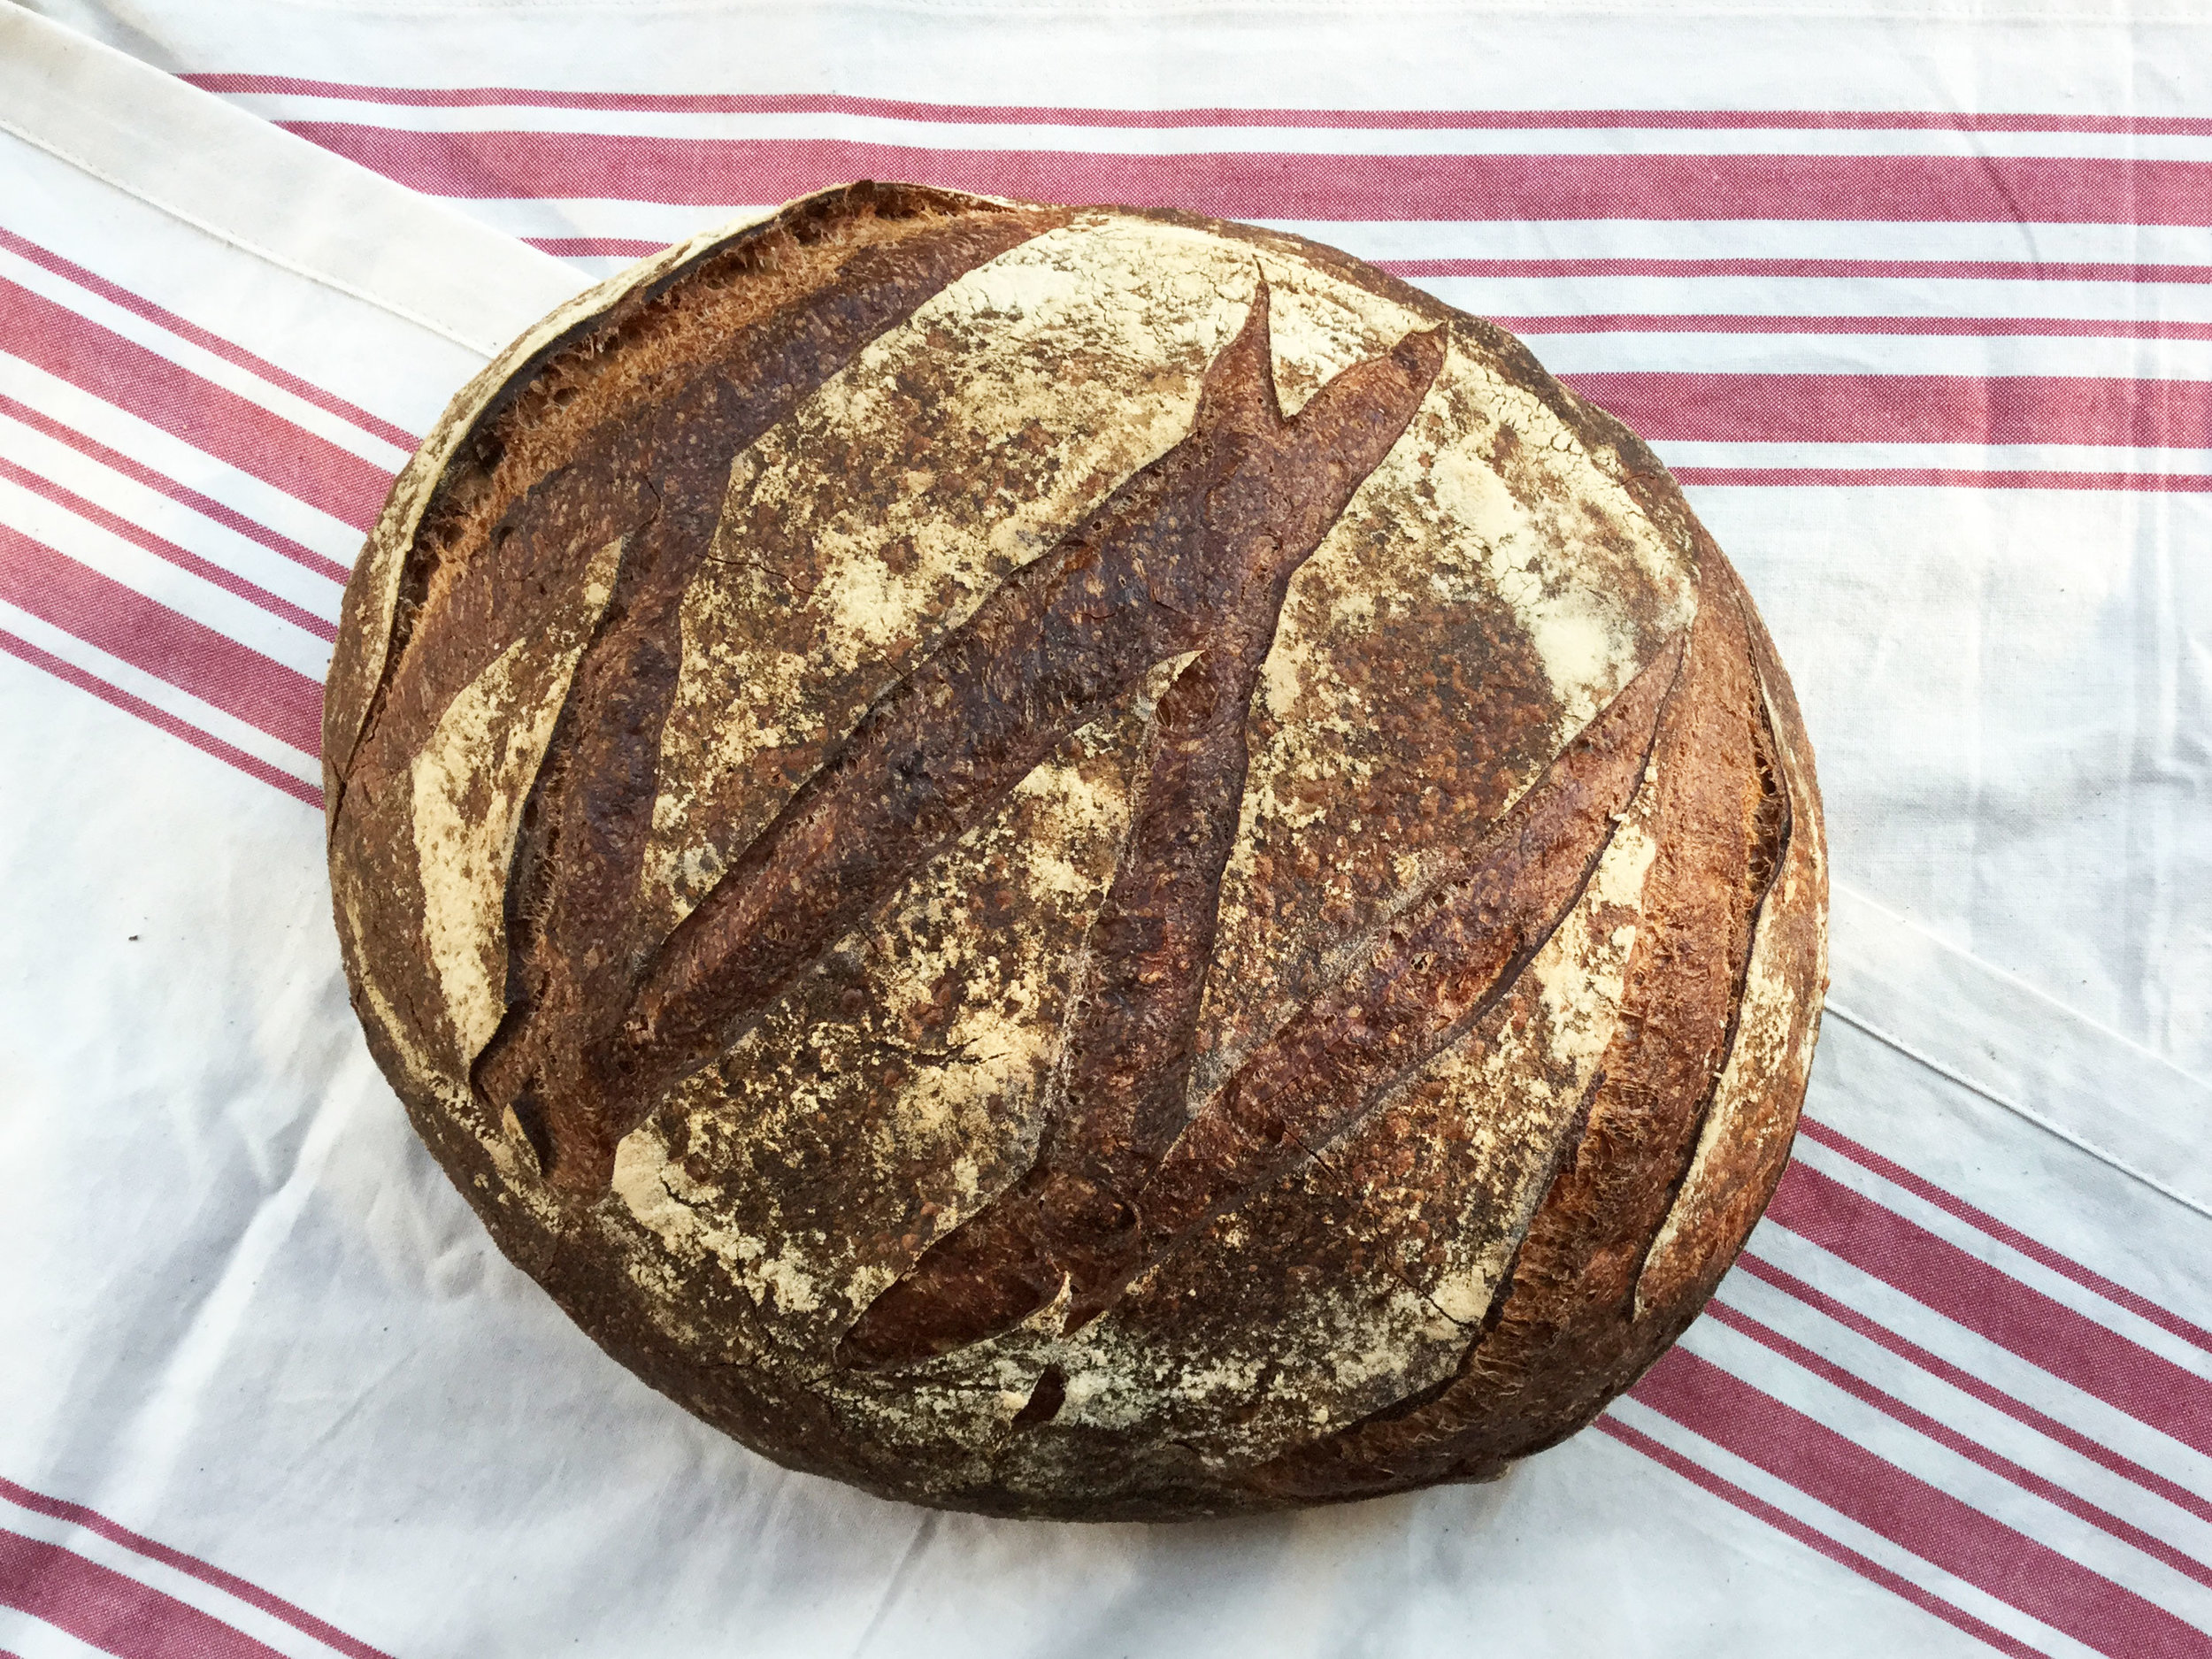 MICHE   A French country round - enough bread to satisfy your family for a week.      Ingredients: Unbleached white flour, organic whole-wheat flour, organic rye flour, sourdough starter, sea salt, water.